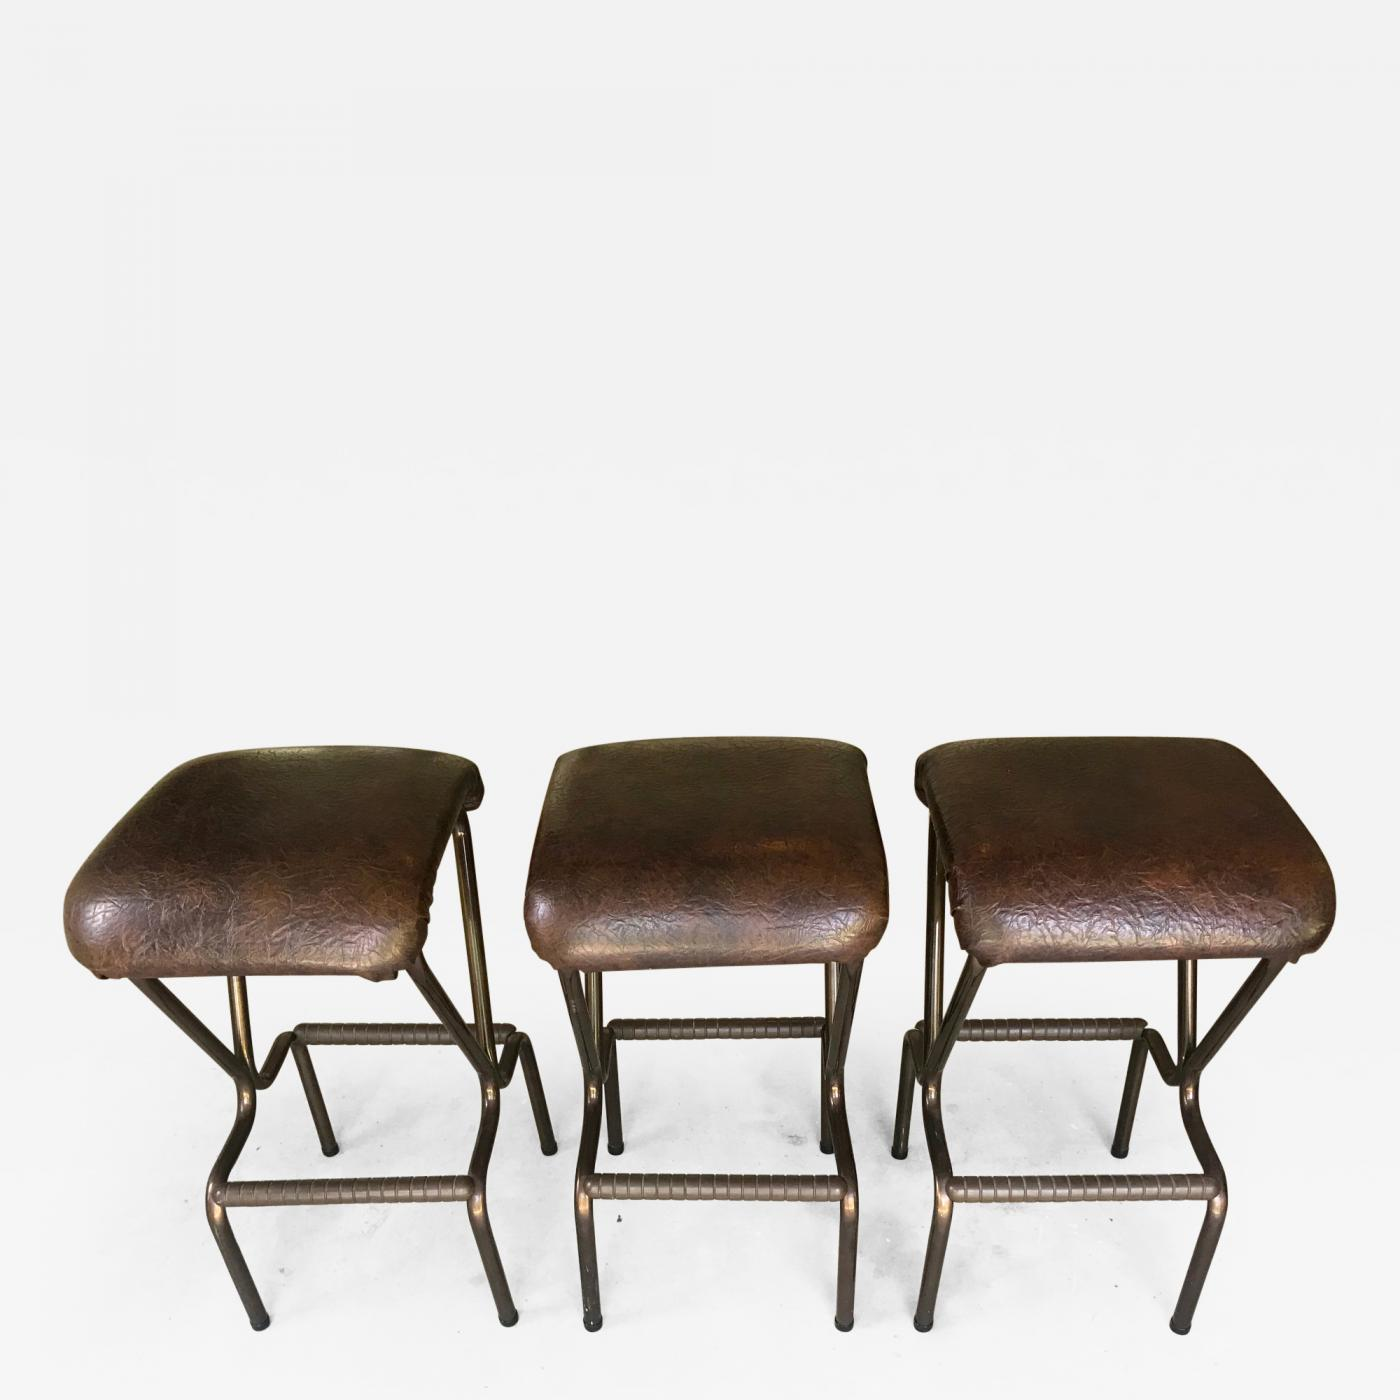 Awe Inspiring Daystrom A Set Of Three Mid Century Modern Bar Stools By Daystrom Dailytribune Chair Design For Home Dailytribuneorg